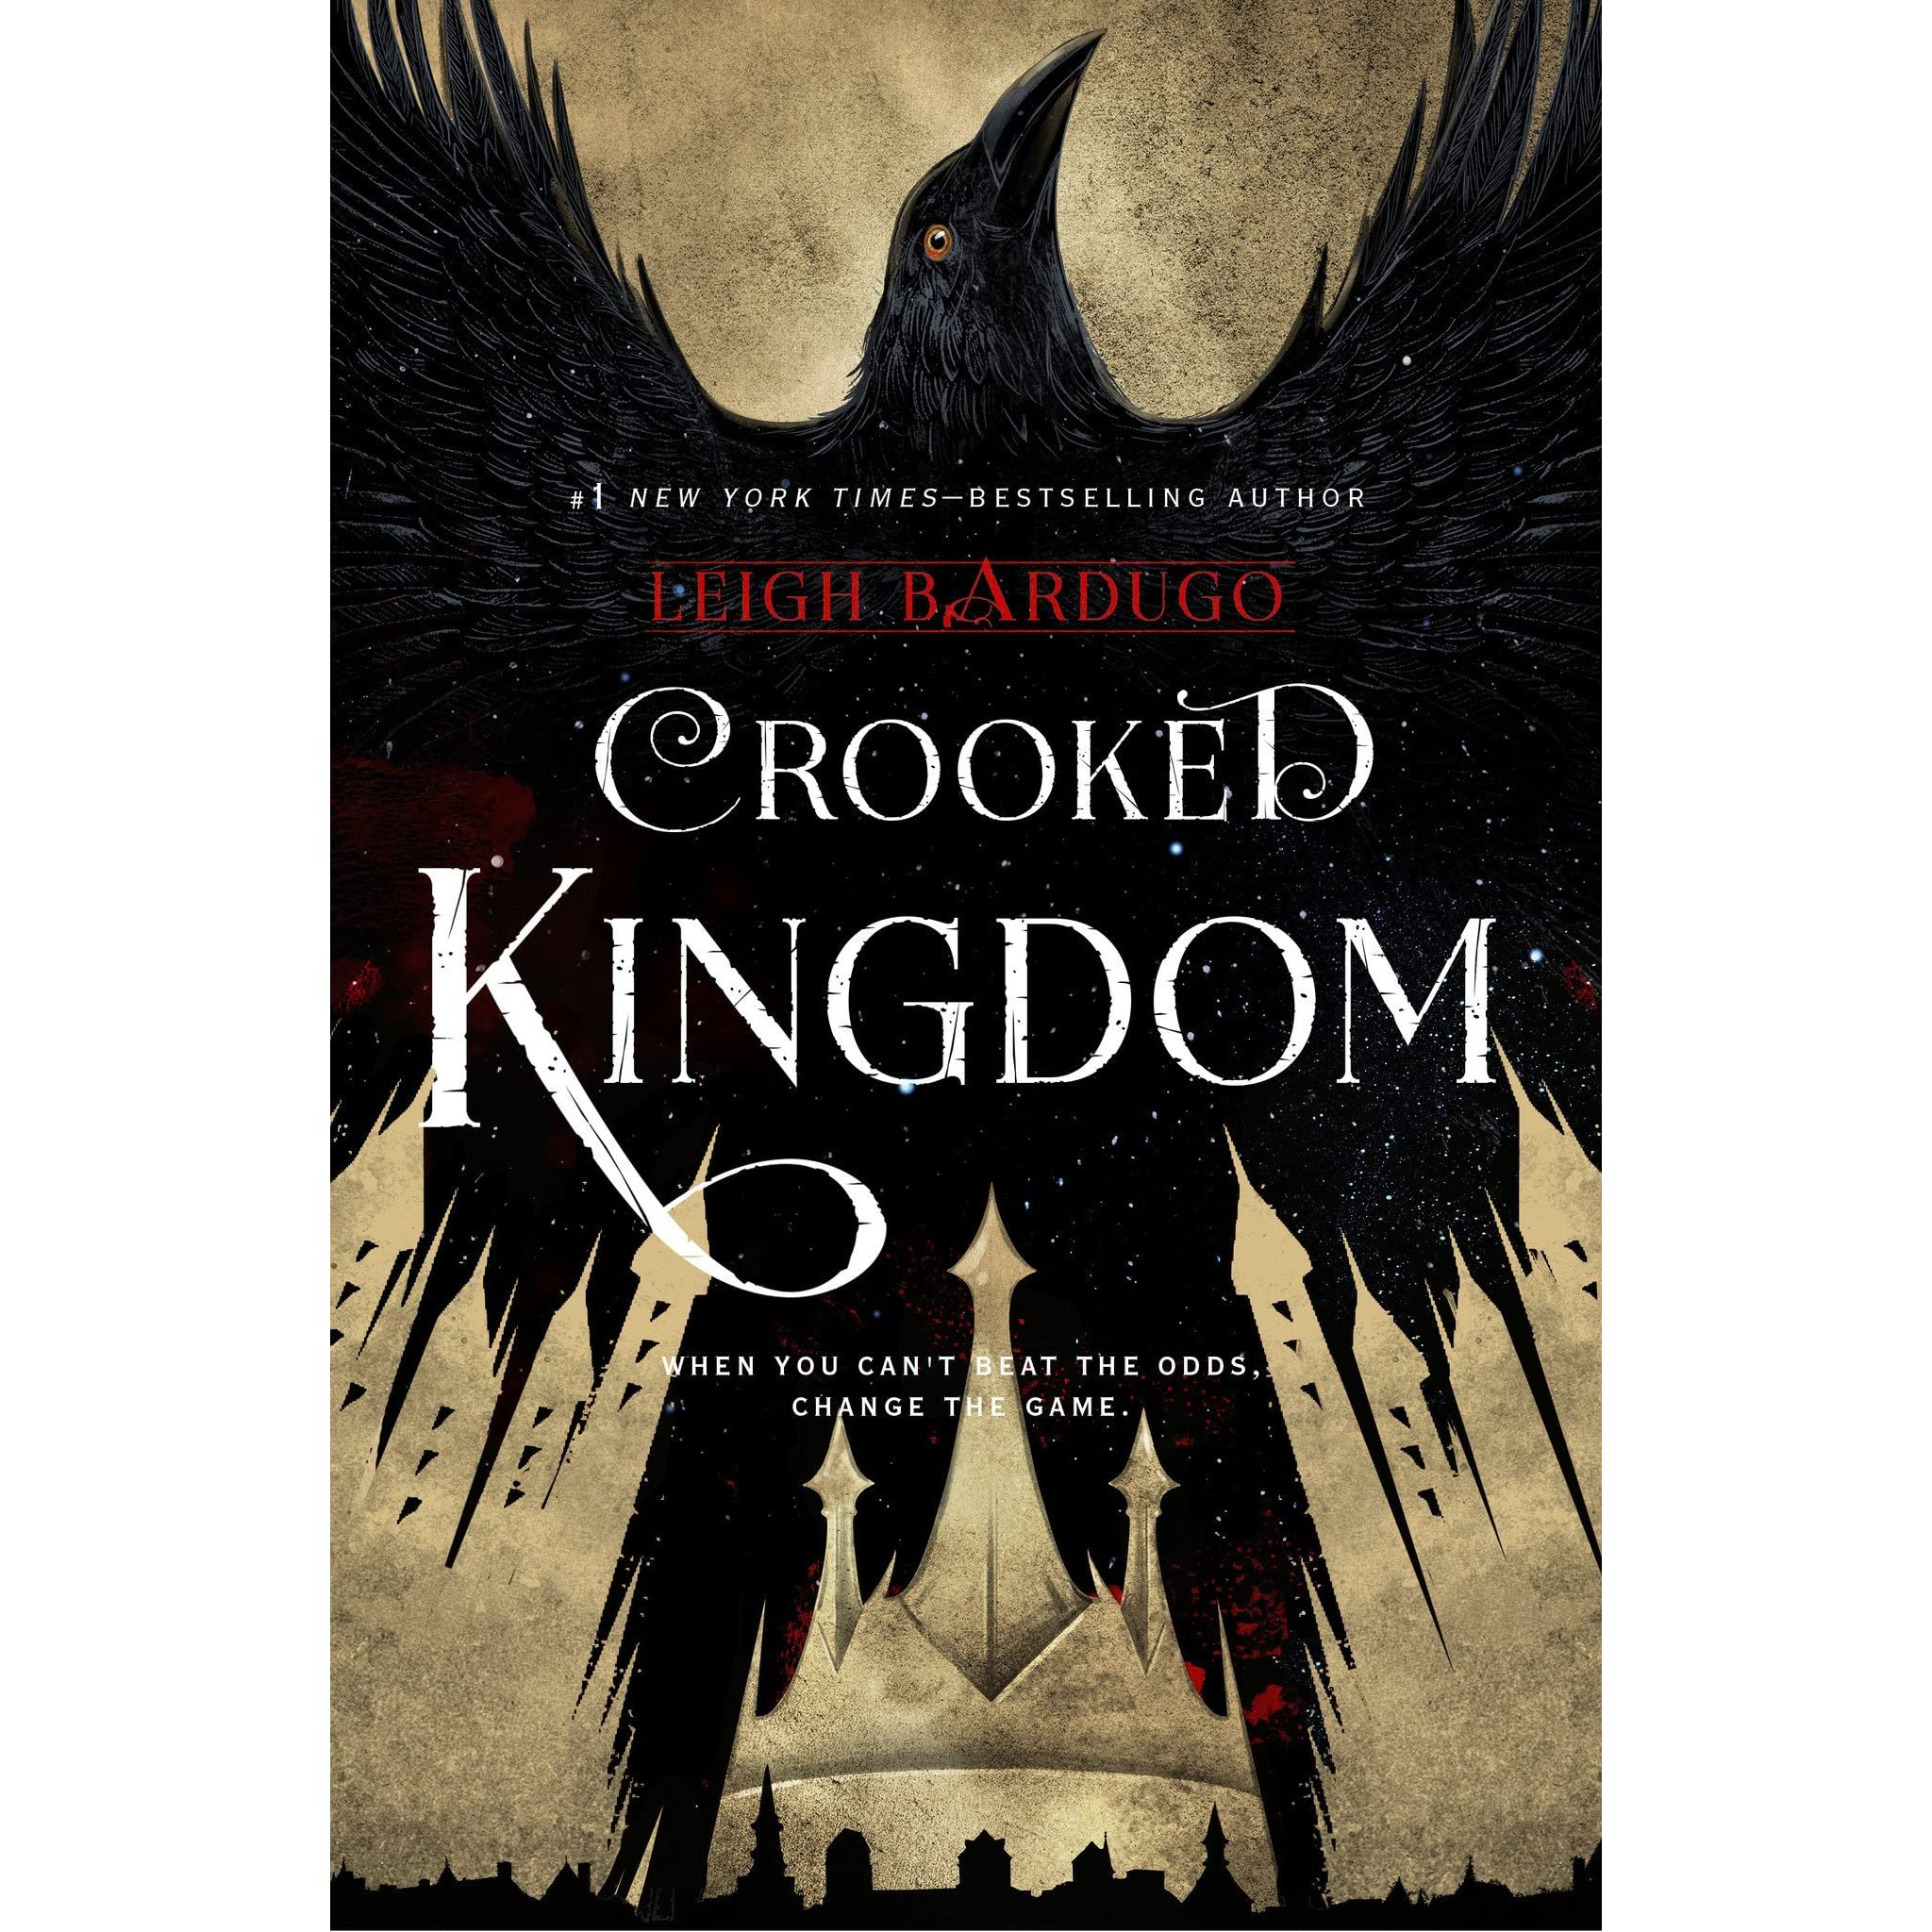 Best Book Covers Goodreads : Crooked kingdom six of crows by leigh bardugo